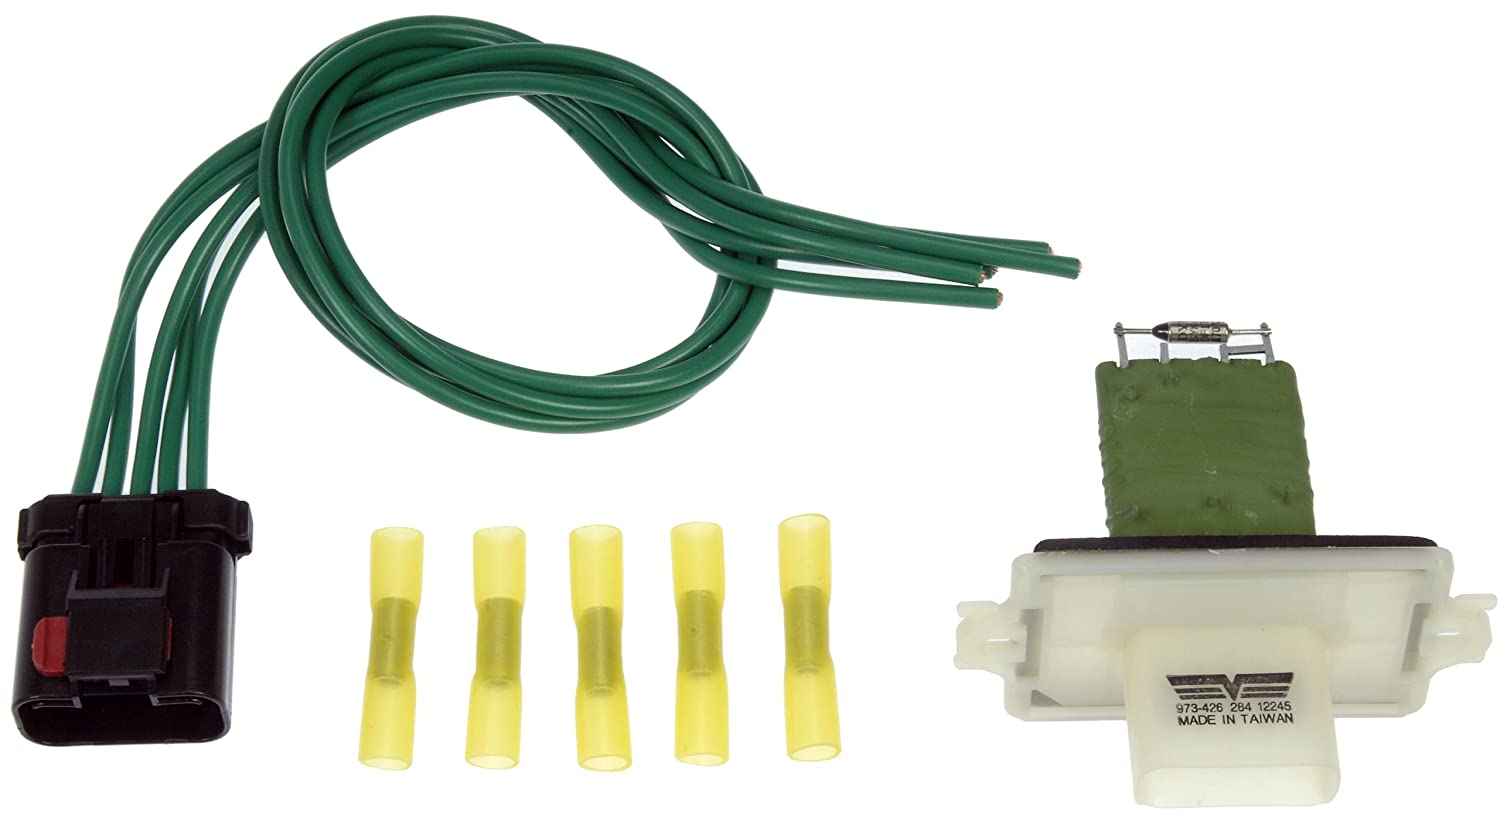 71d6VCcmzNL._SL1500_ amazon com dorman 973 426 blower motor resistor kit automotive 2003 dodge durango blower motor resistor wiring harness at alyssarenee.co